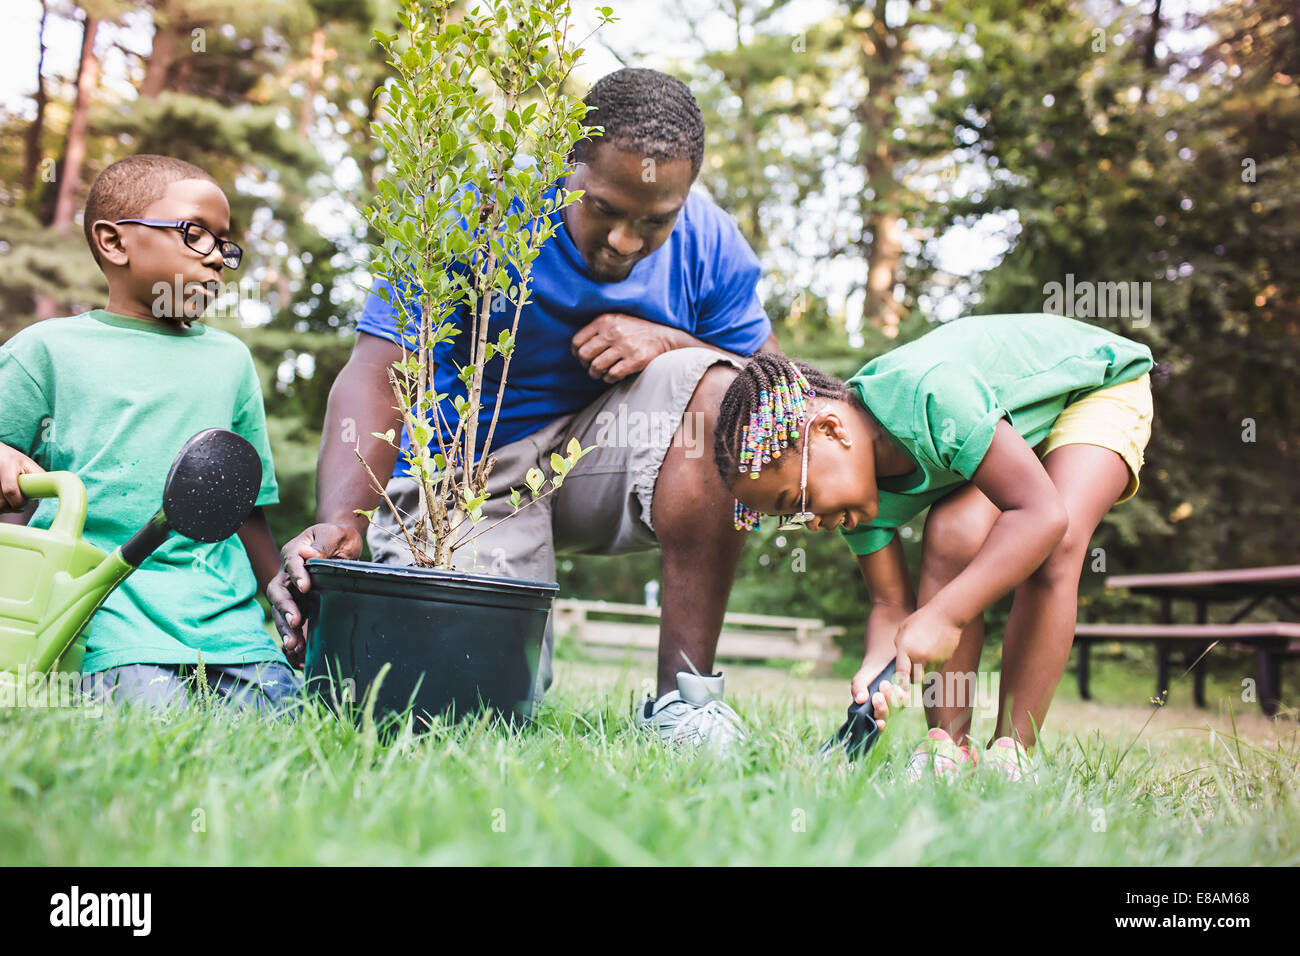 Father tending plants with son and daughter at eco camp - Stock Image